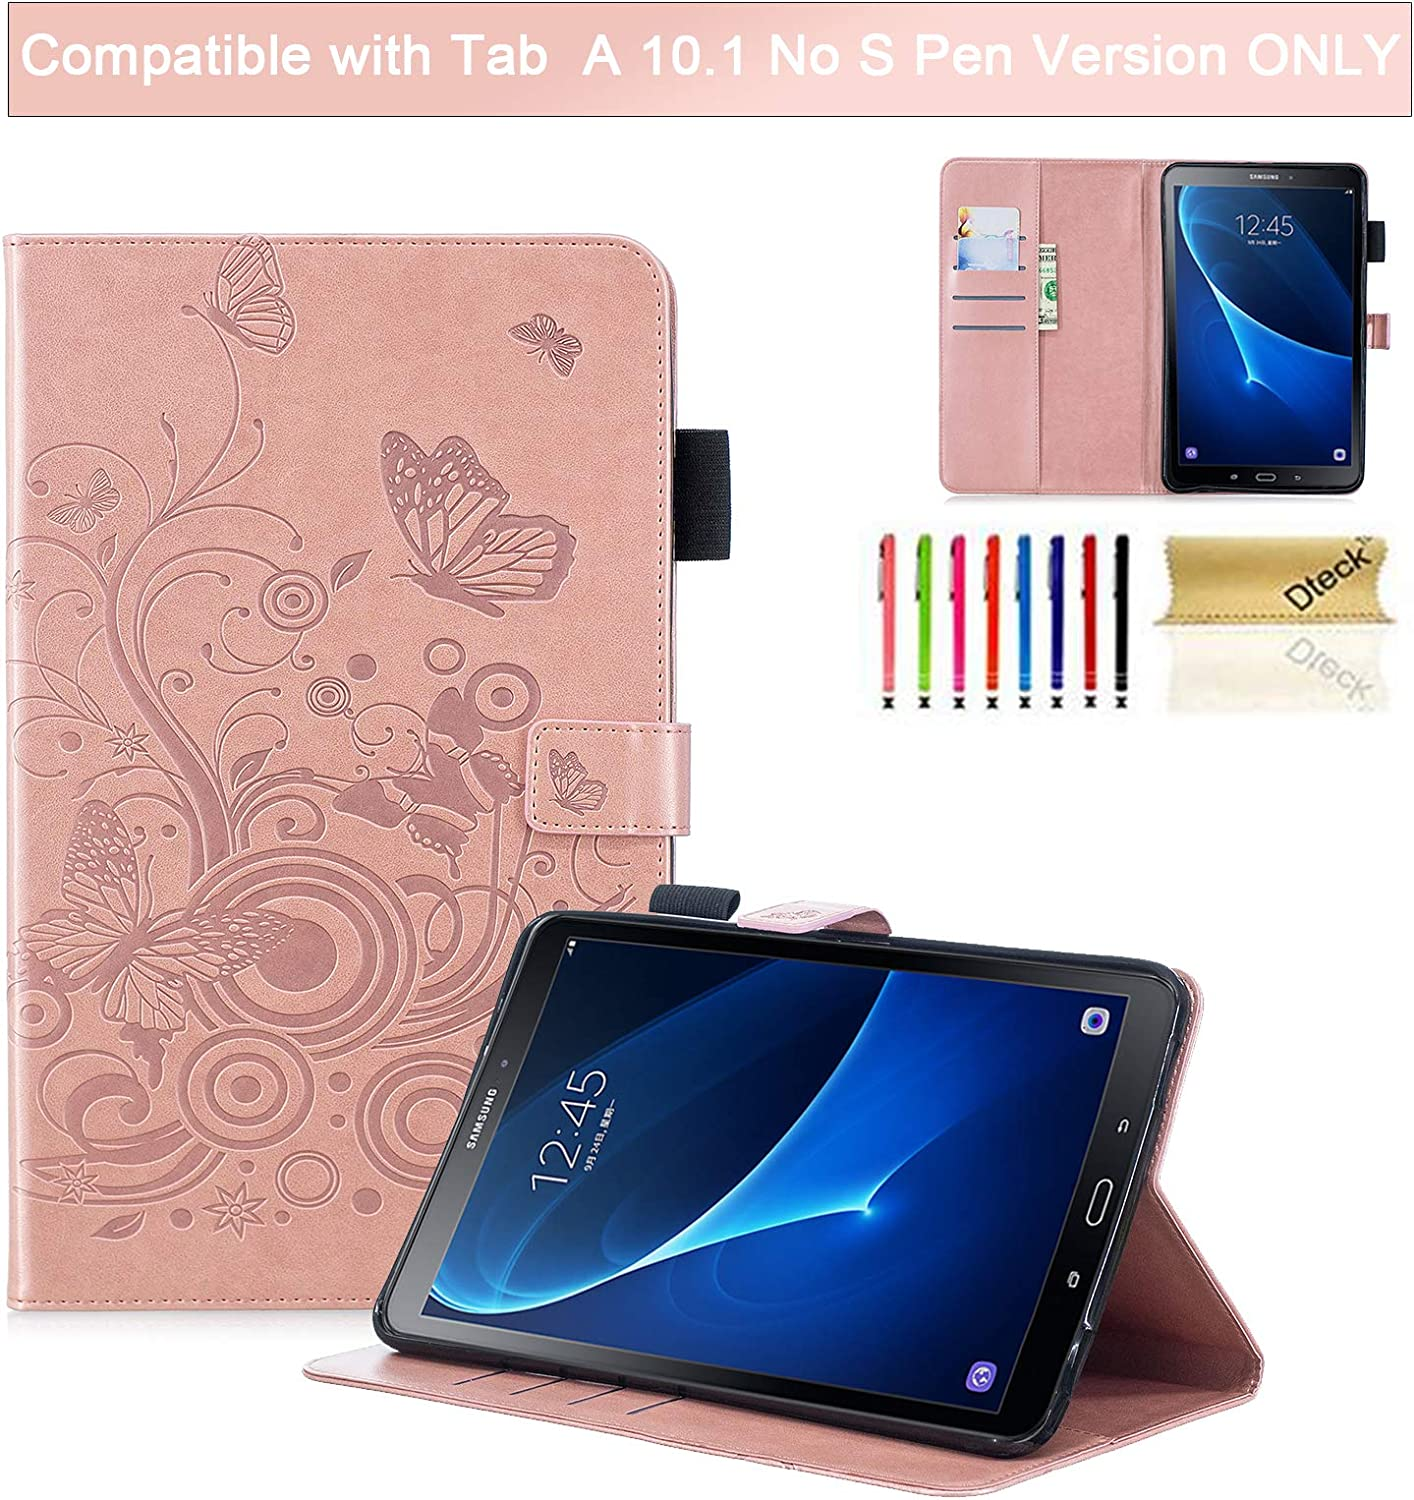 Dteck Galaxy Tab A 10.1 Case 2016 Model SM-T580 - [3D Embossed Butterfly] PU Leather Stand Case for Galaxy Tab A 10.1 Inch Tablet SM-T580 T585 T587 (2016 Release NO S Pen Version), Rosegold